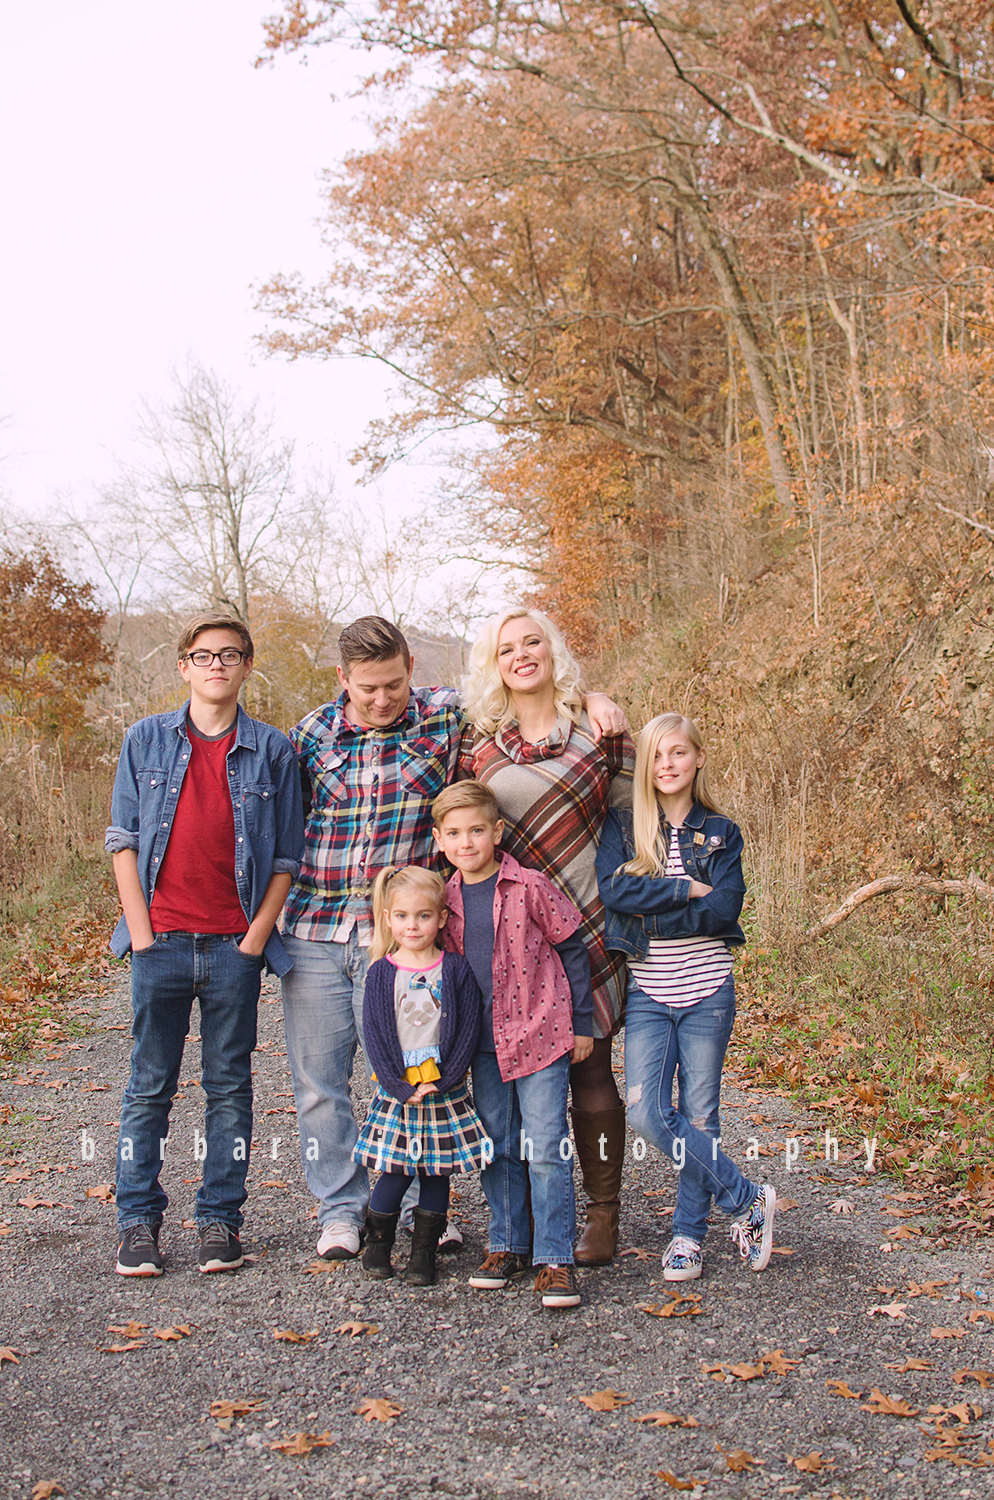 bjp-family-children-photographer-dover-oh-mini-sessions-fall-autumn-fantin3.png